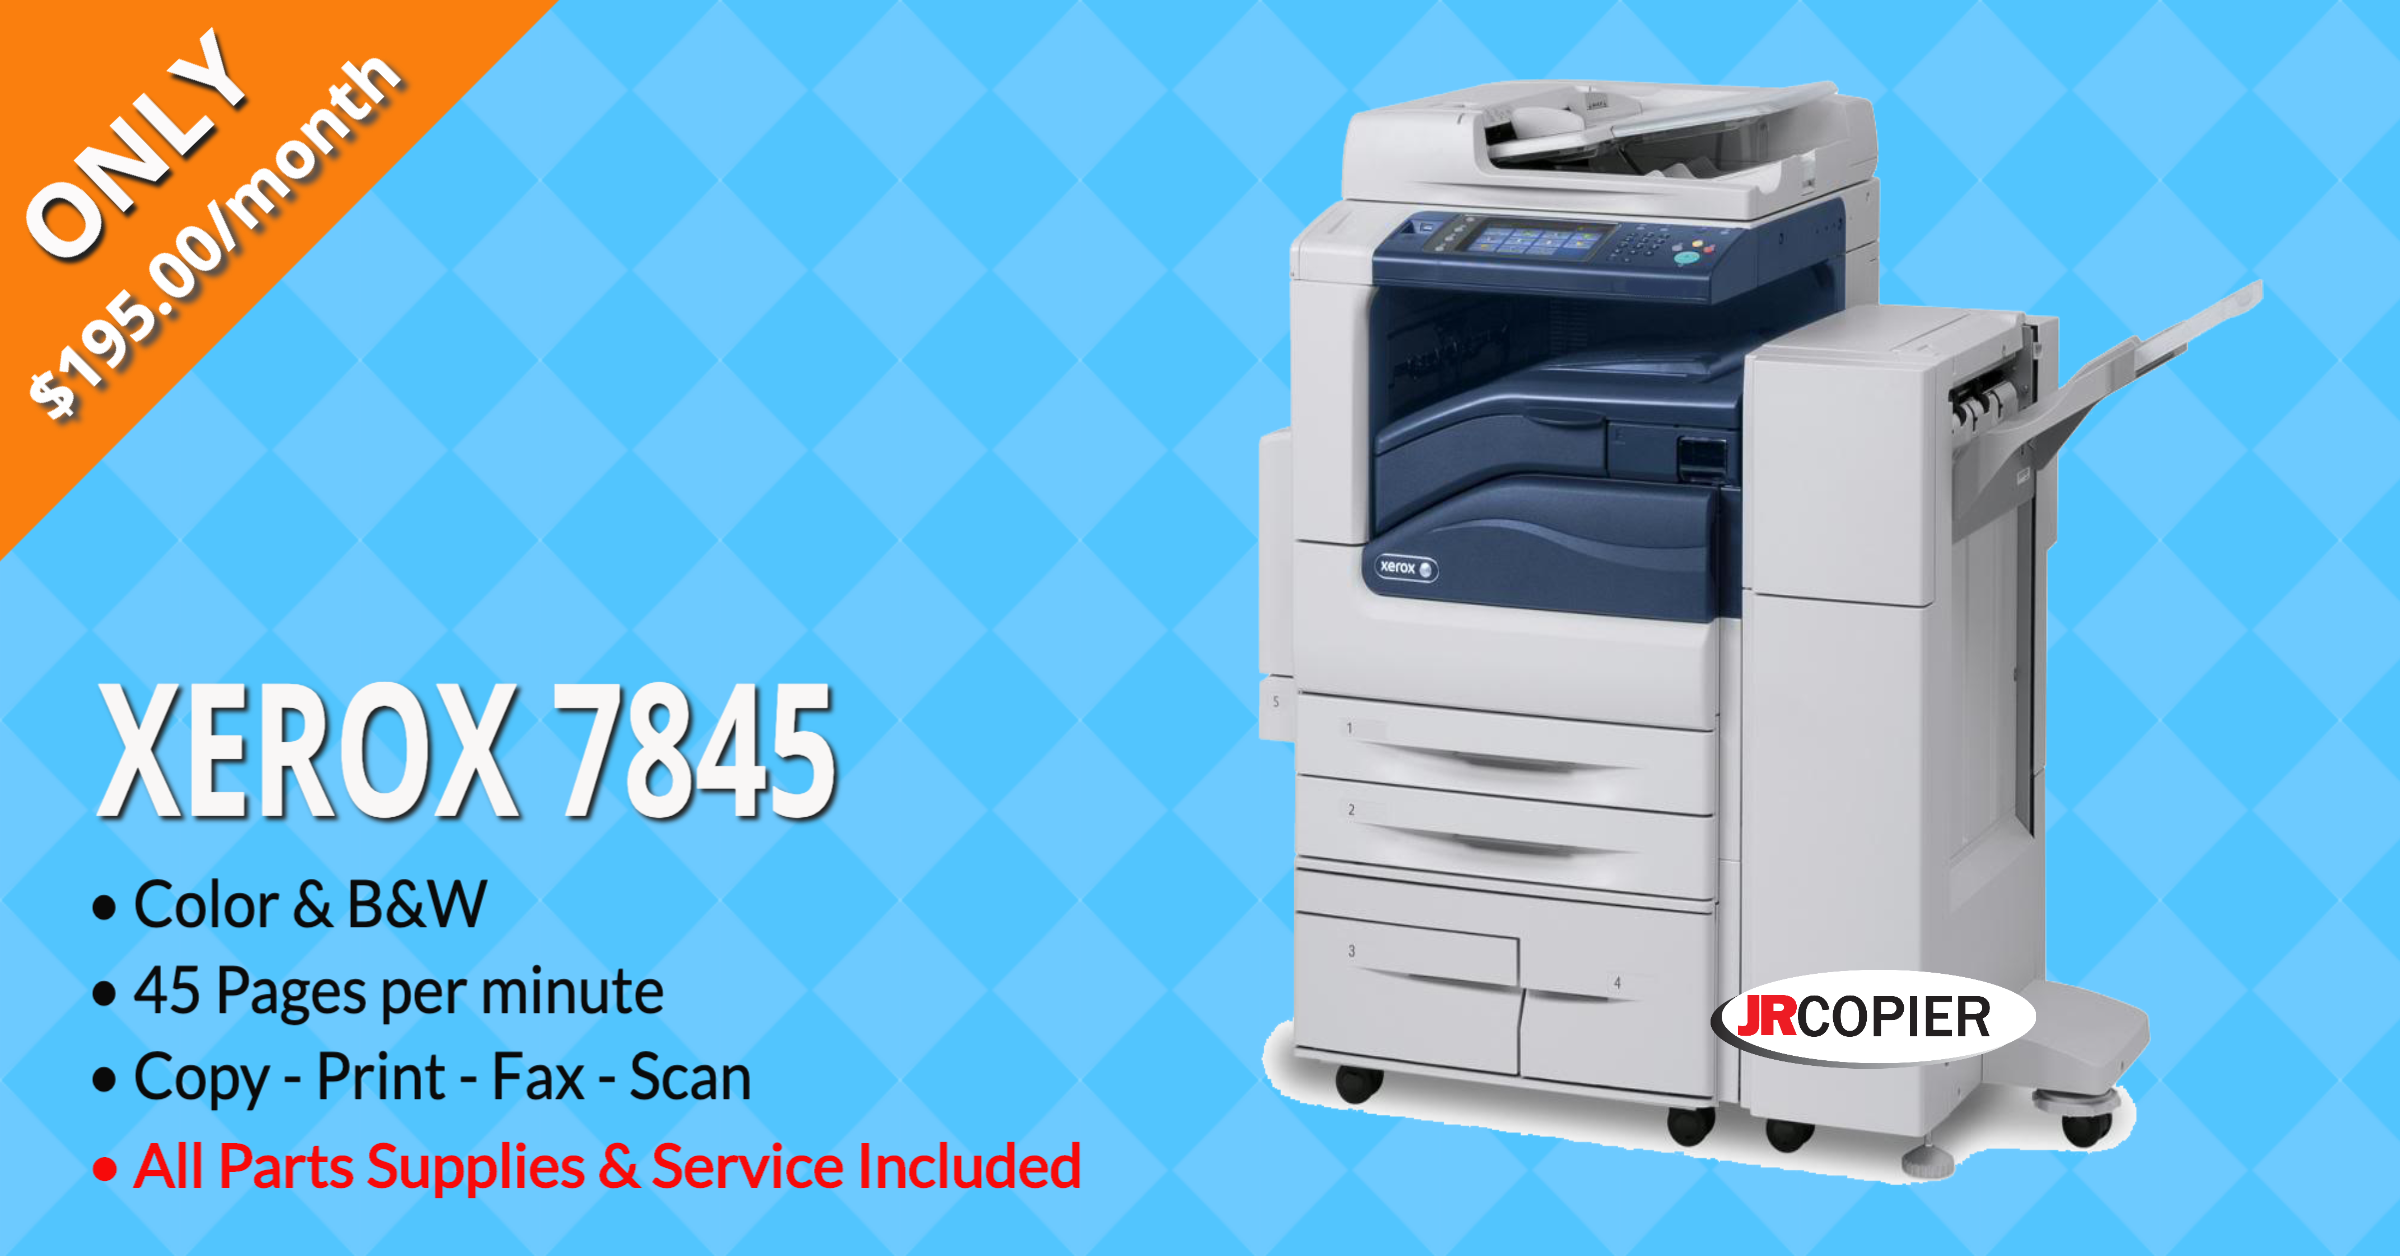 Copy Machine Companies 01754